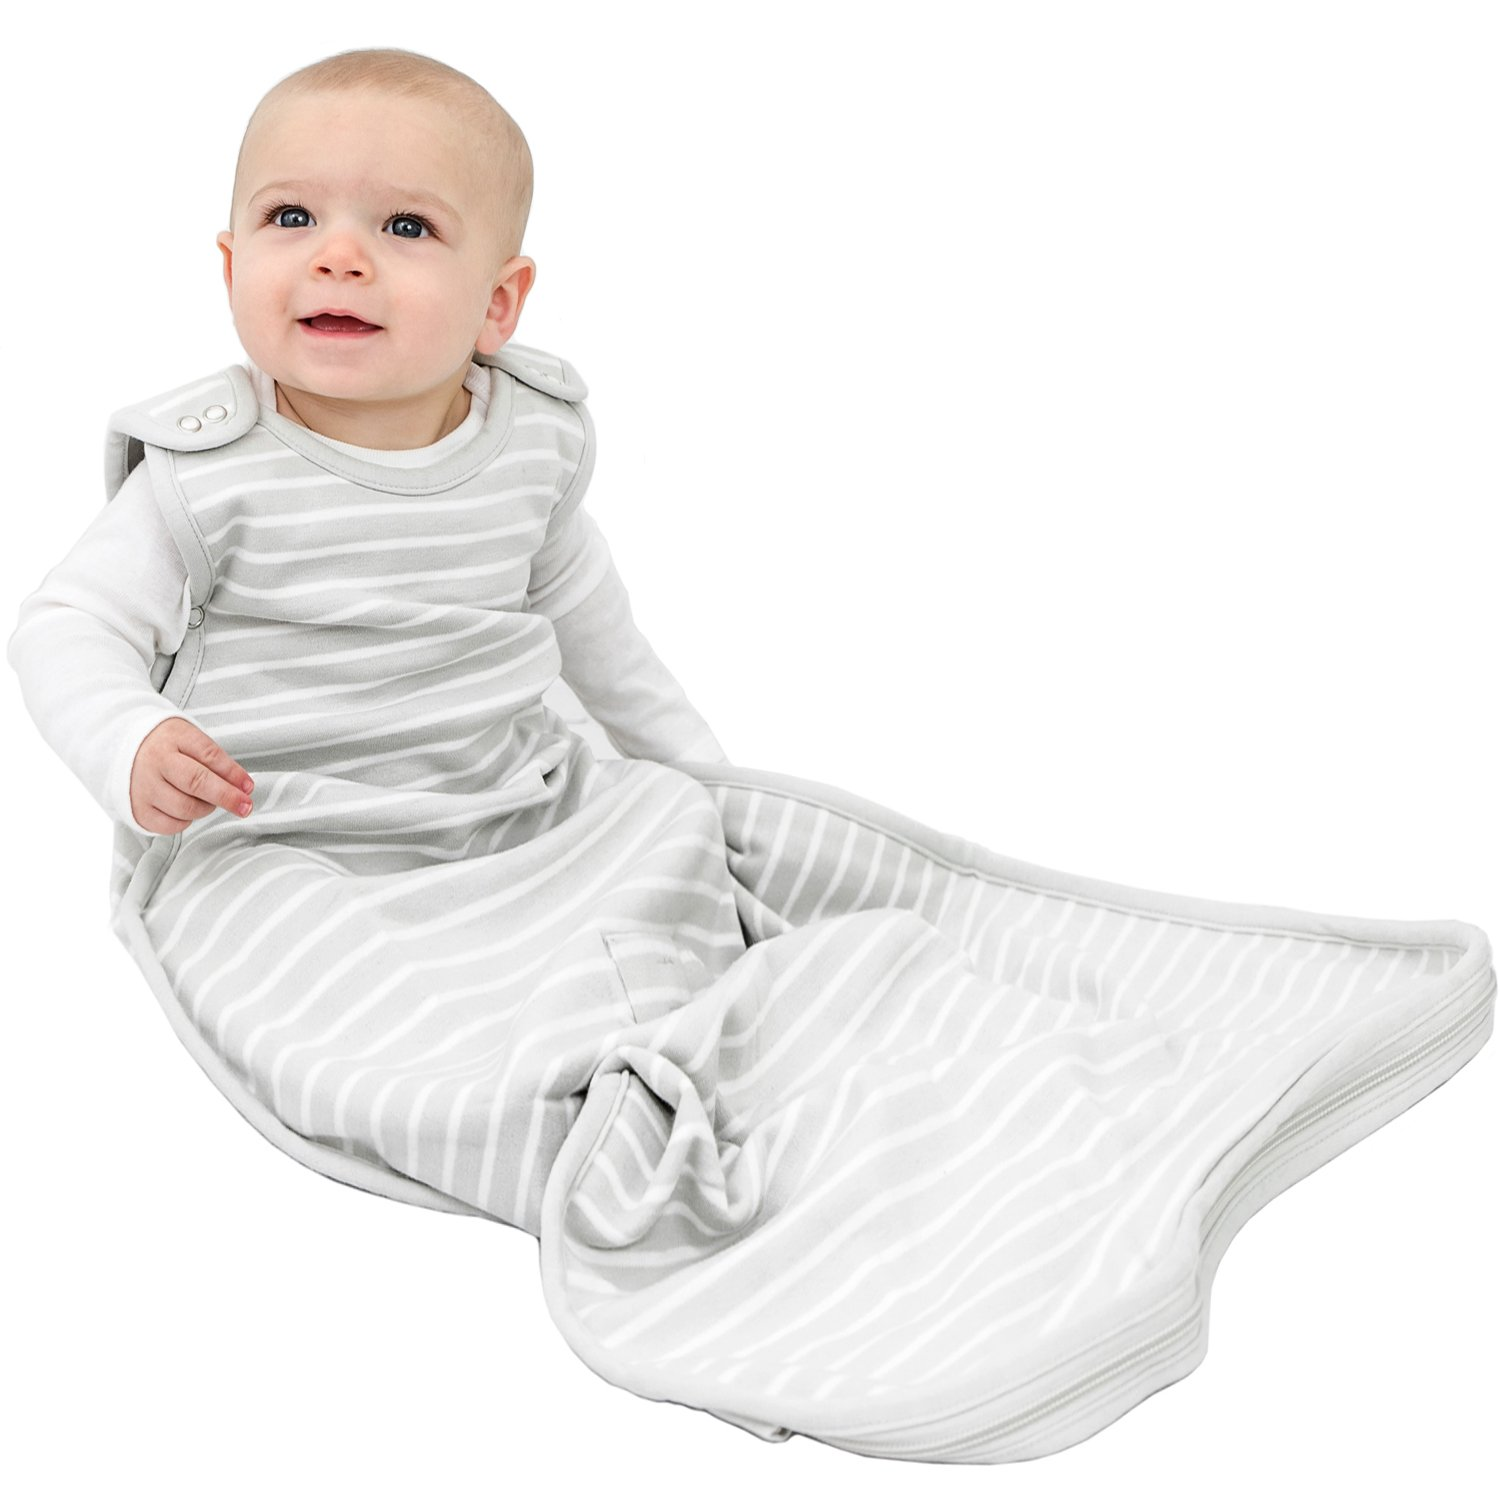 Woolino Baby Sleeping Sack - 4 Season - Merino Wool - 2 Month - 2 Year